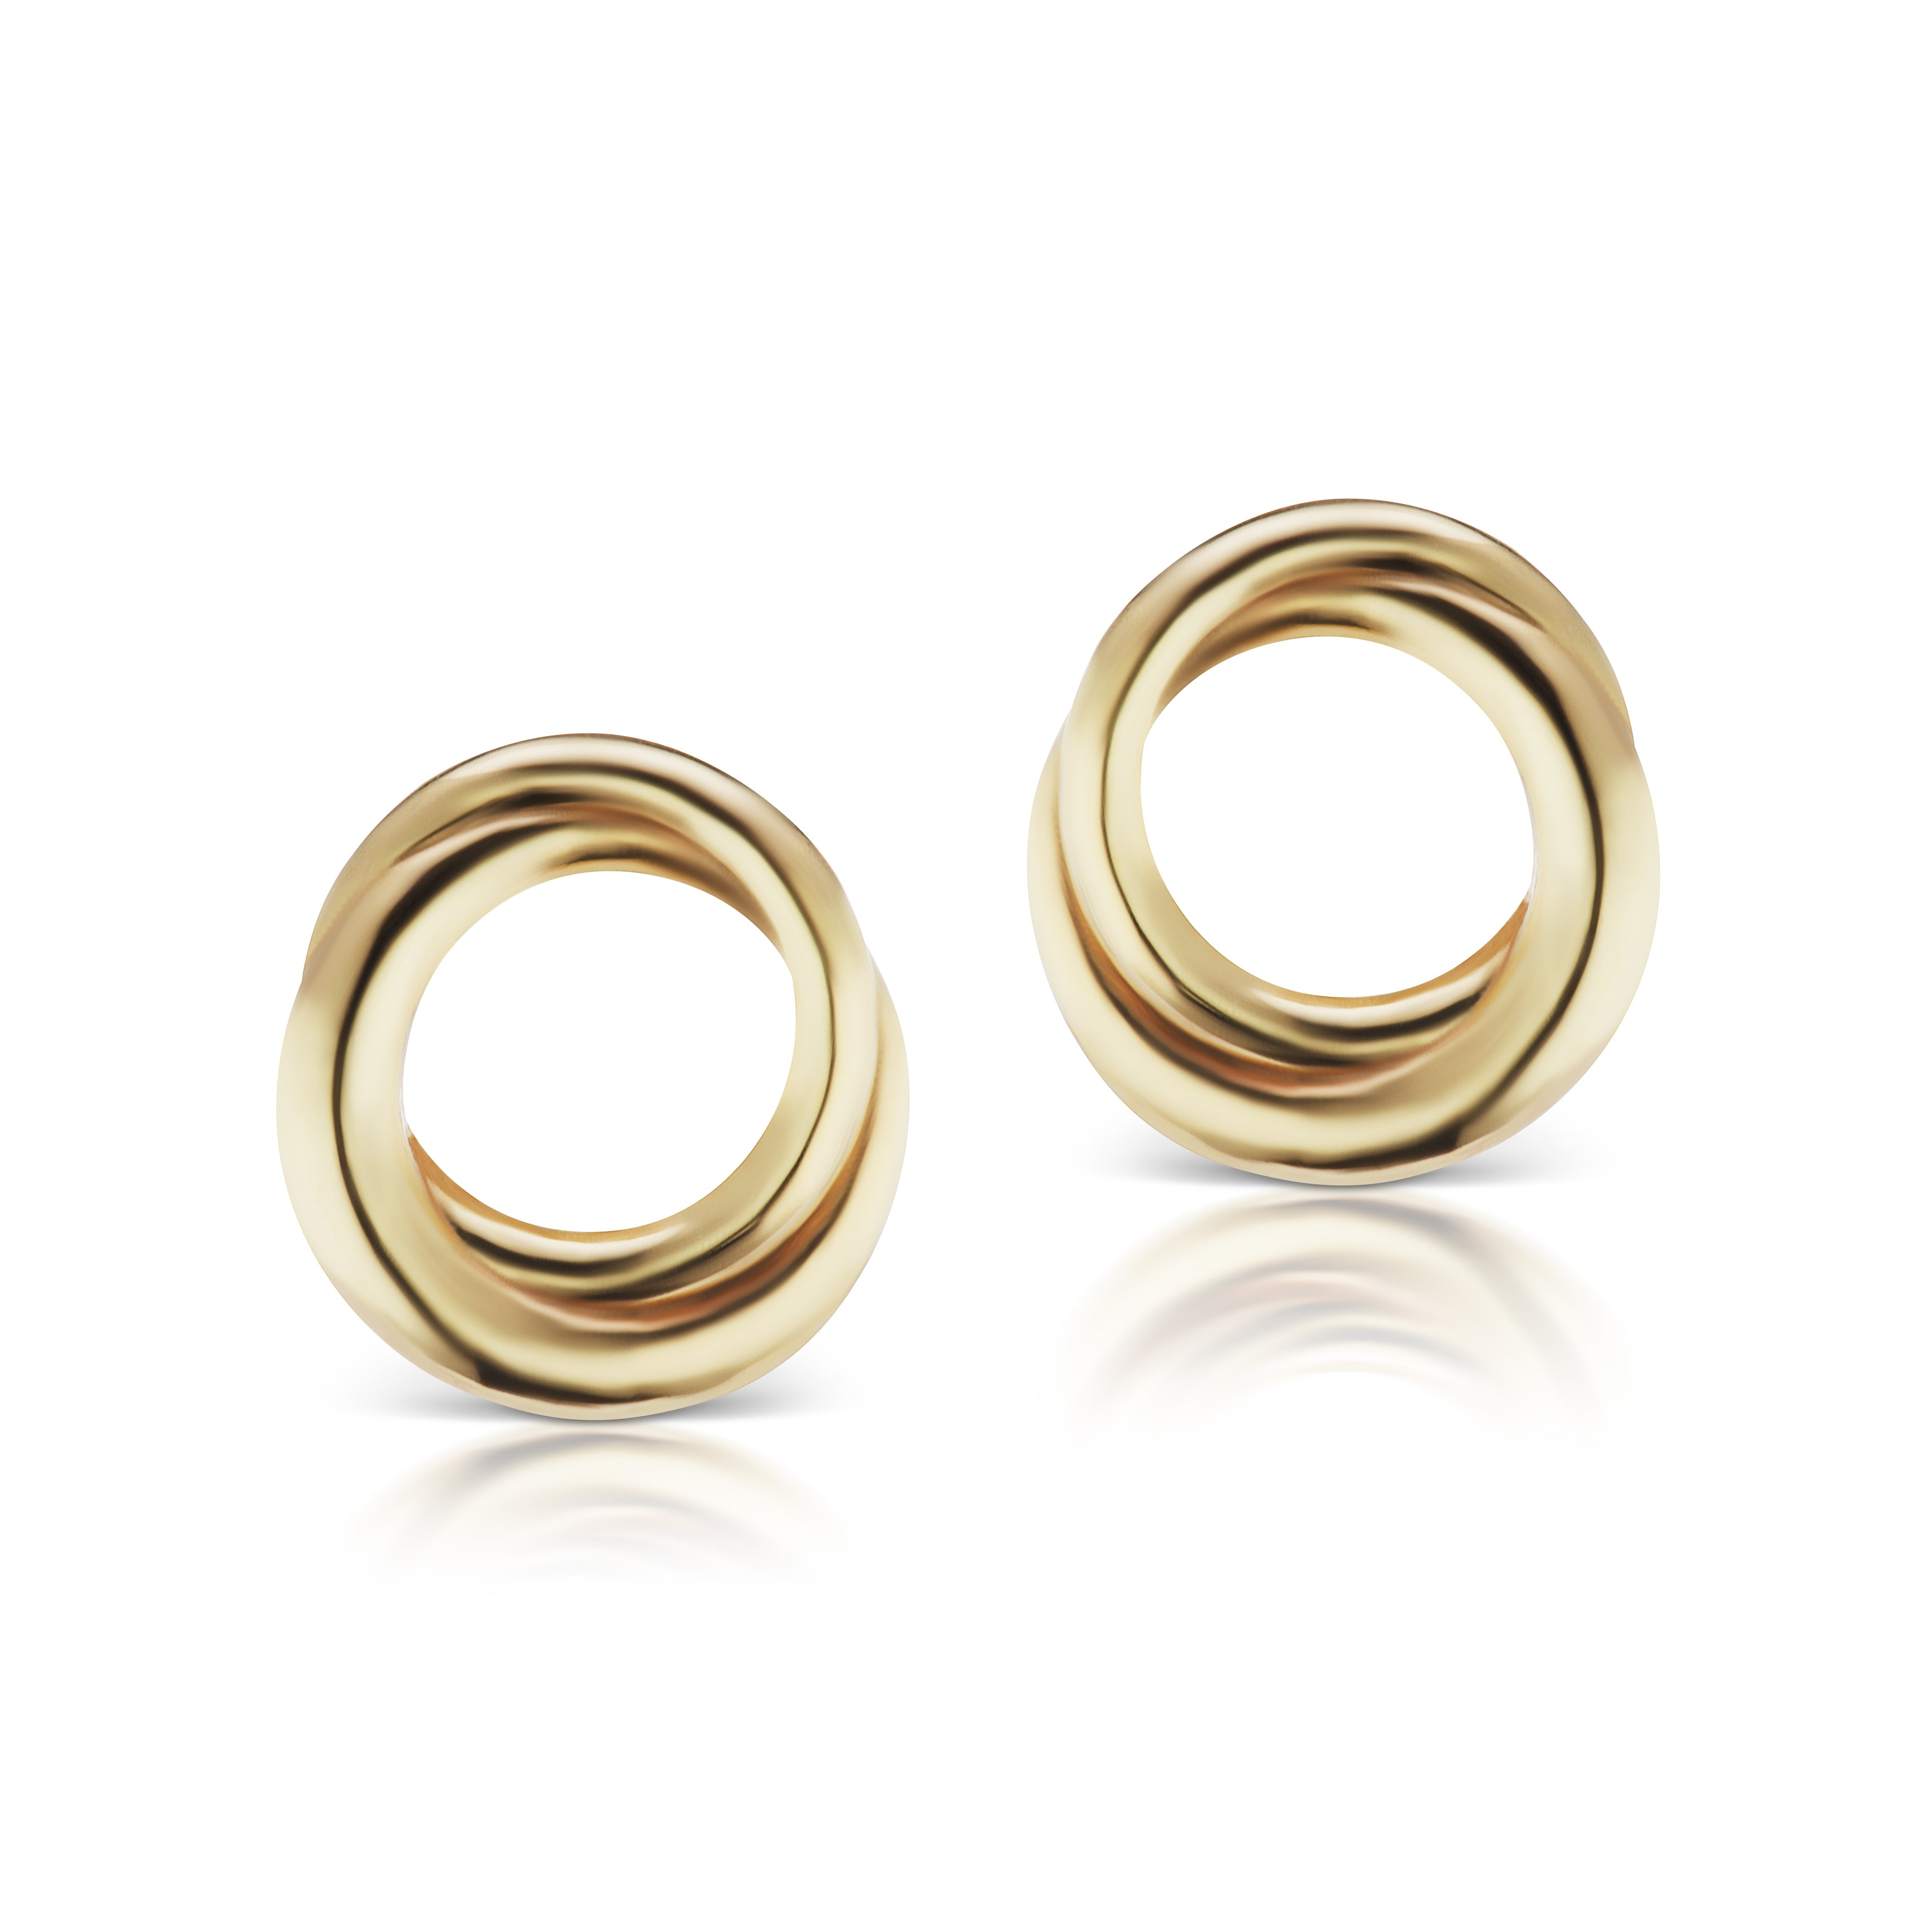 The Gold Encircle Studs